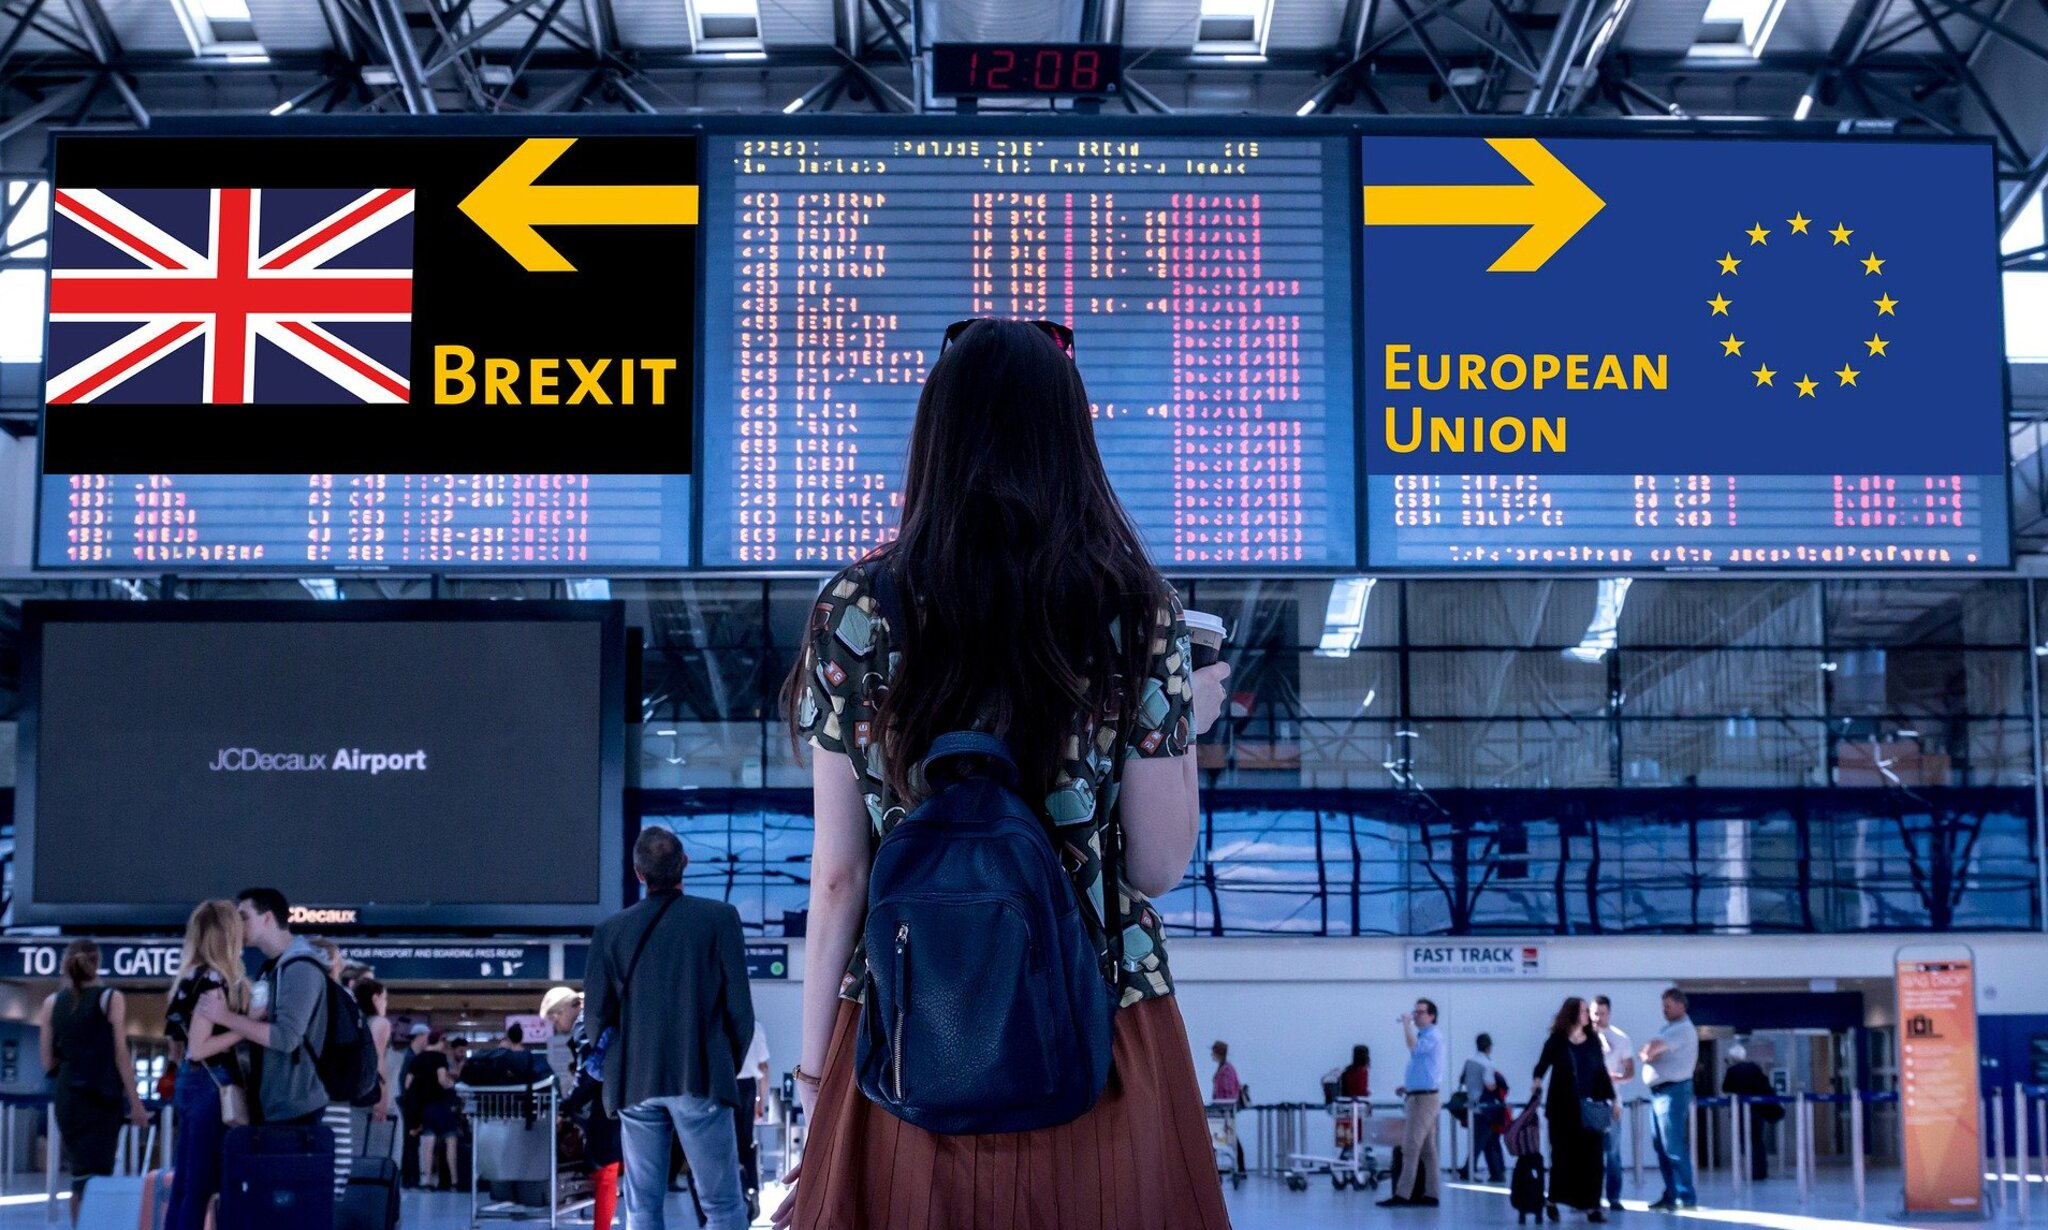 Brexit: An International Education Without The United Kingdom